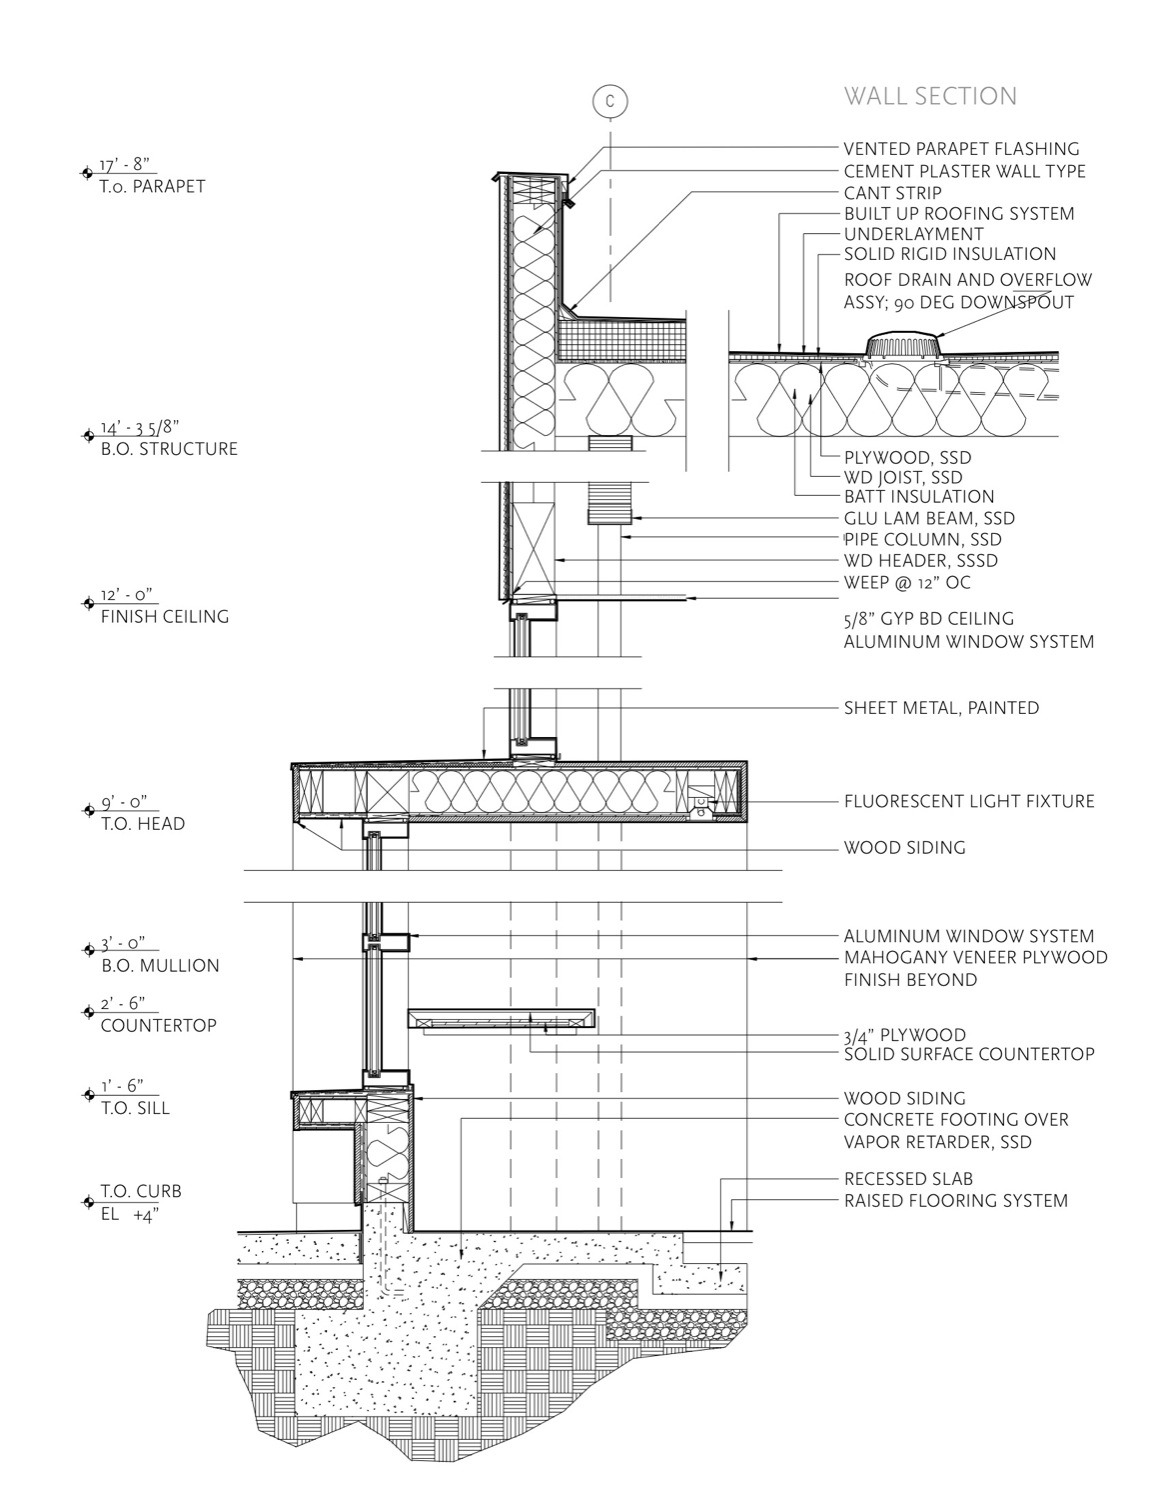 Ingleside branch library 31 karmatrendz for Construction drawings and details for interiors